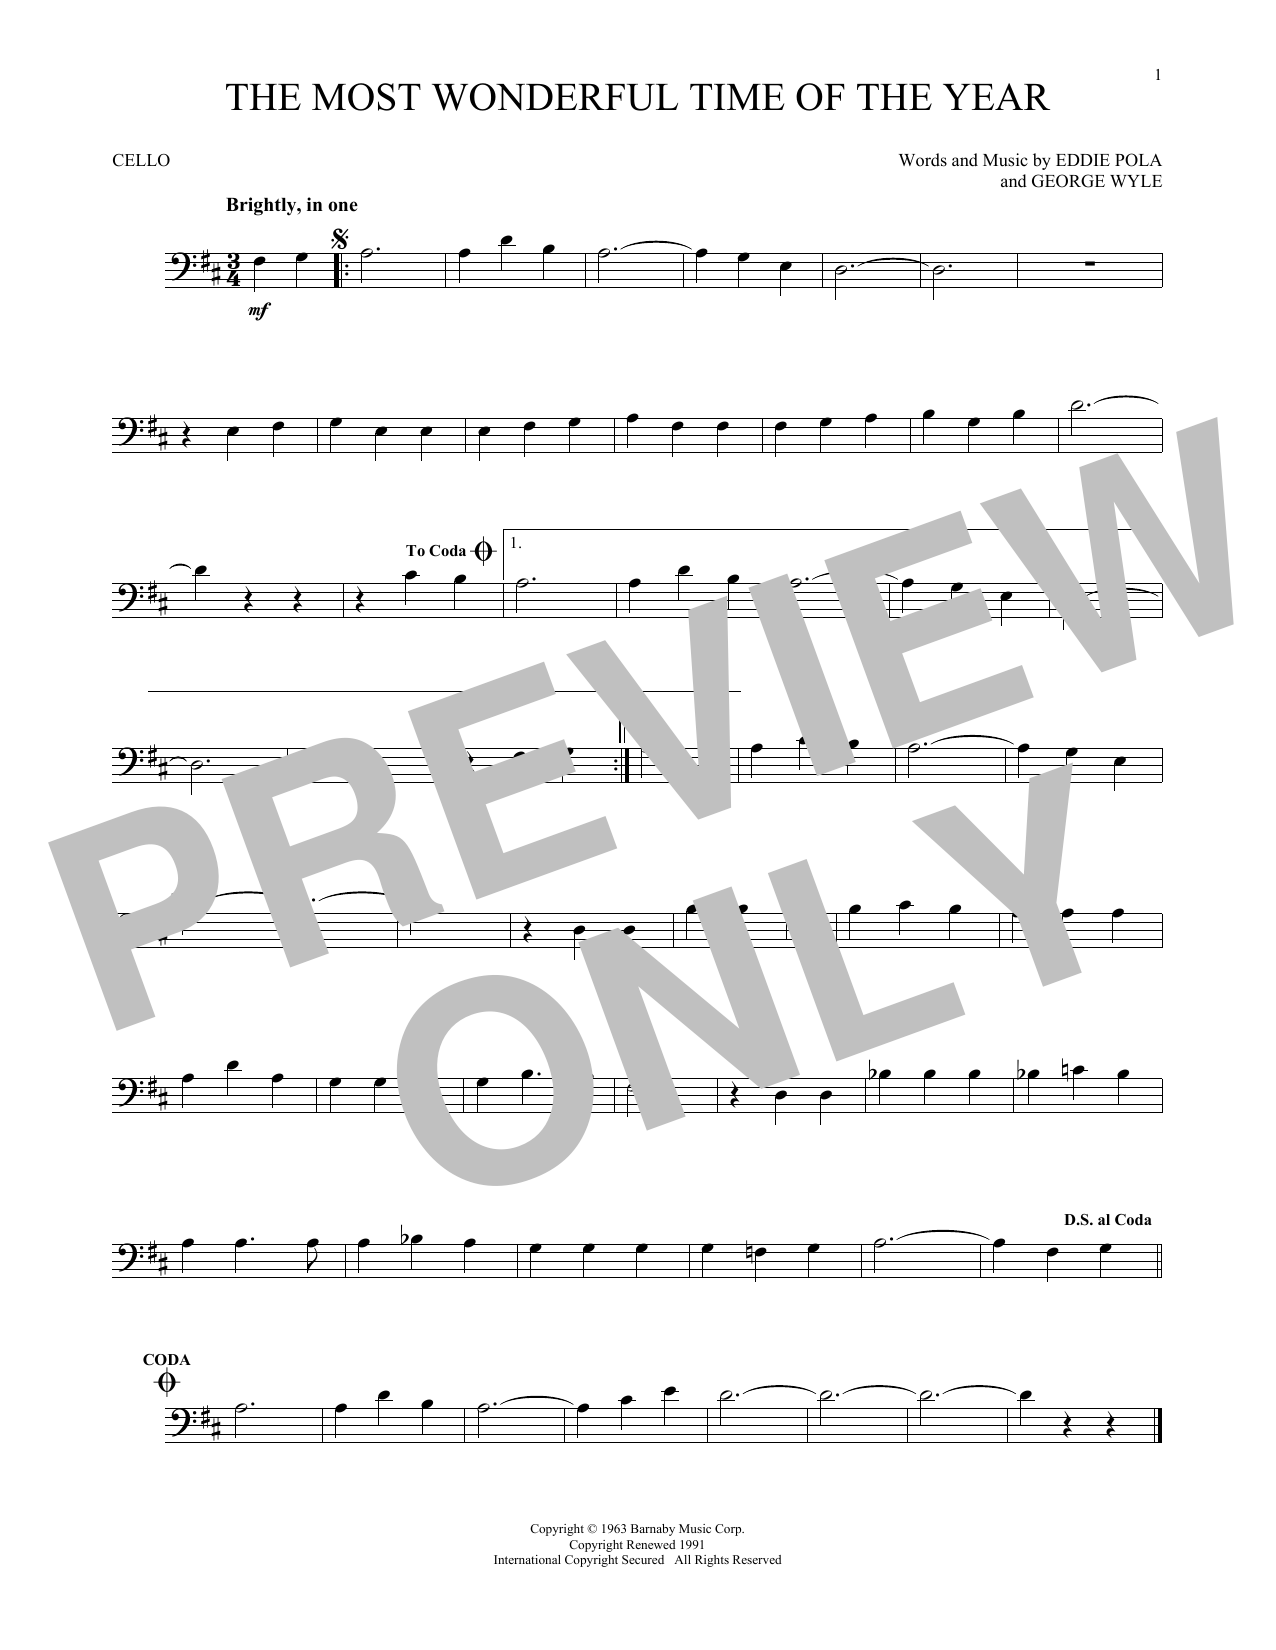 George Wyle & Eddie Pola The Most Wonderful Time Of The Year sheet music notes and chords. Download Printable PDF.